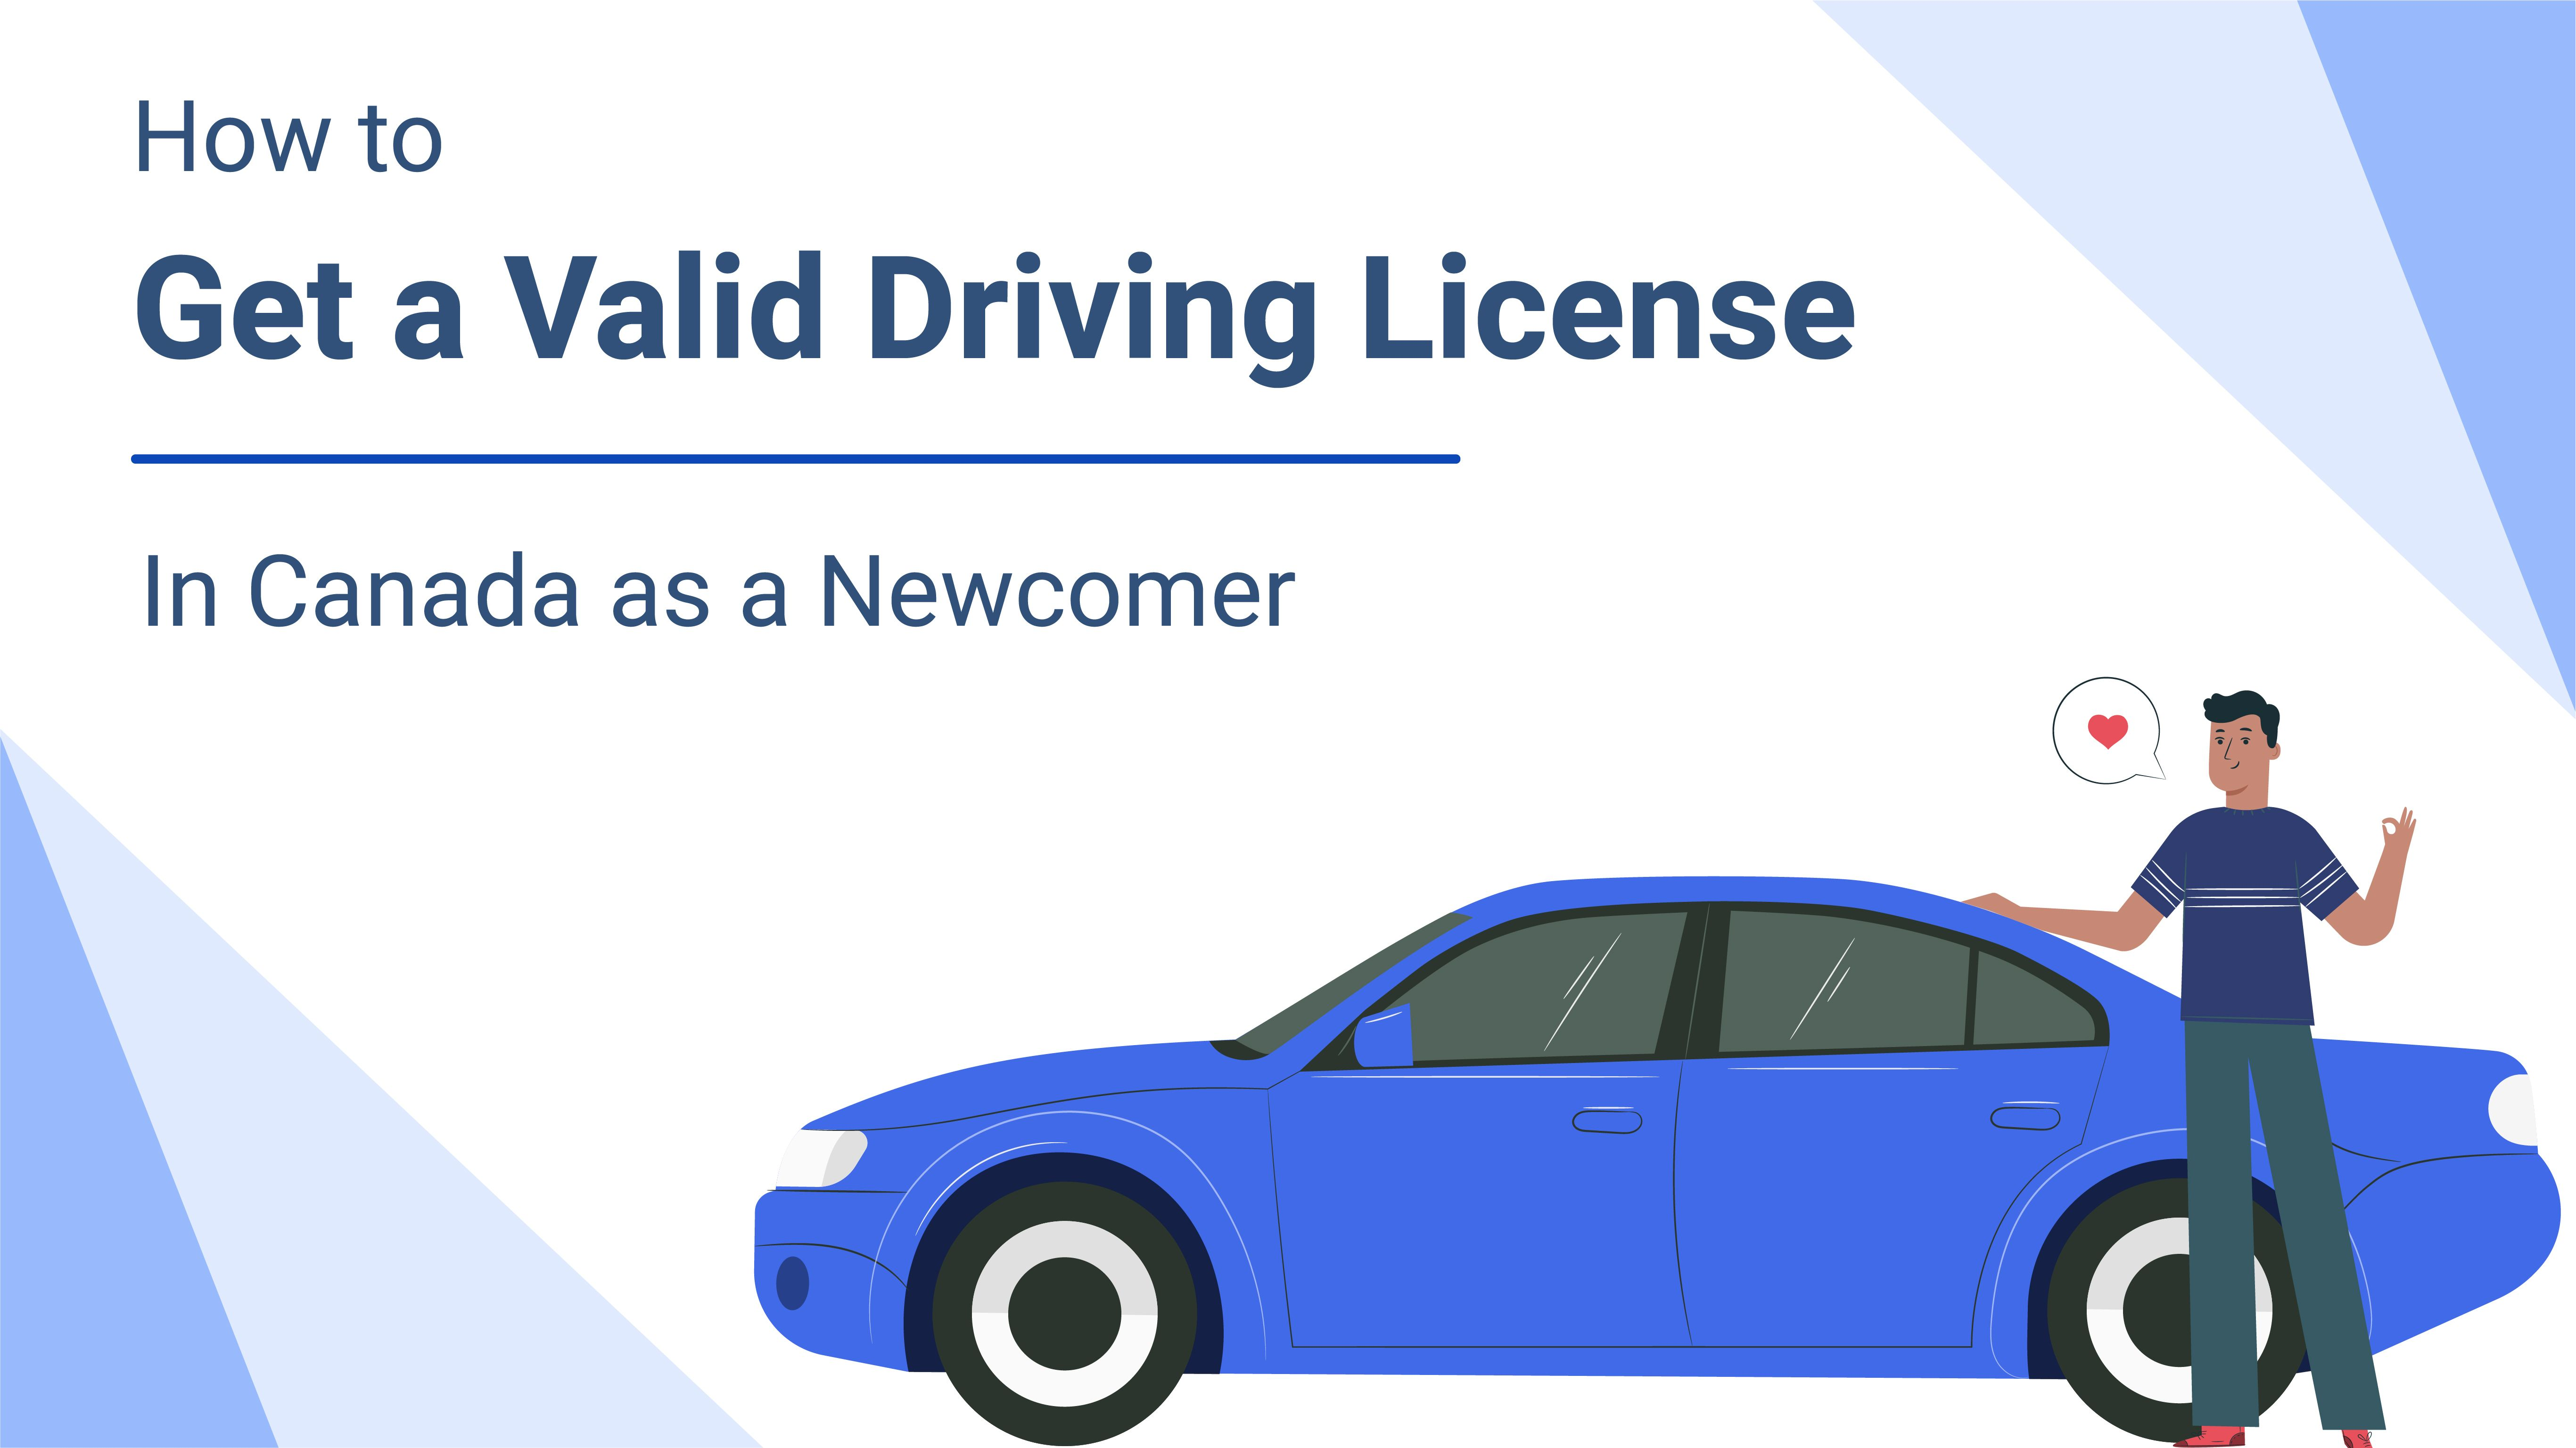 How to get a Driving License in Canada as a New Immigrant